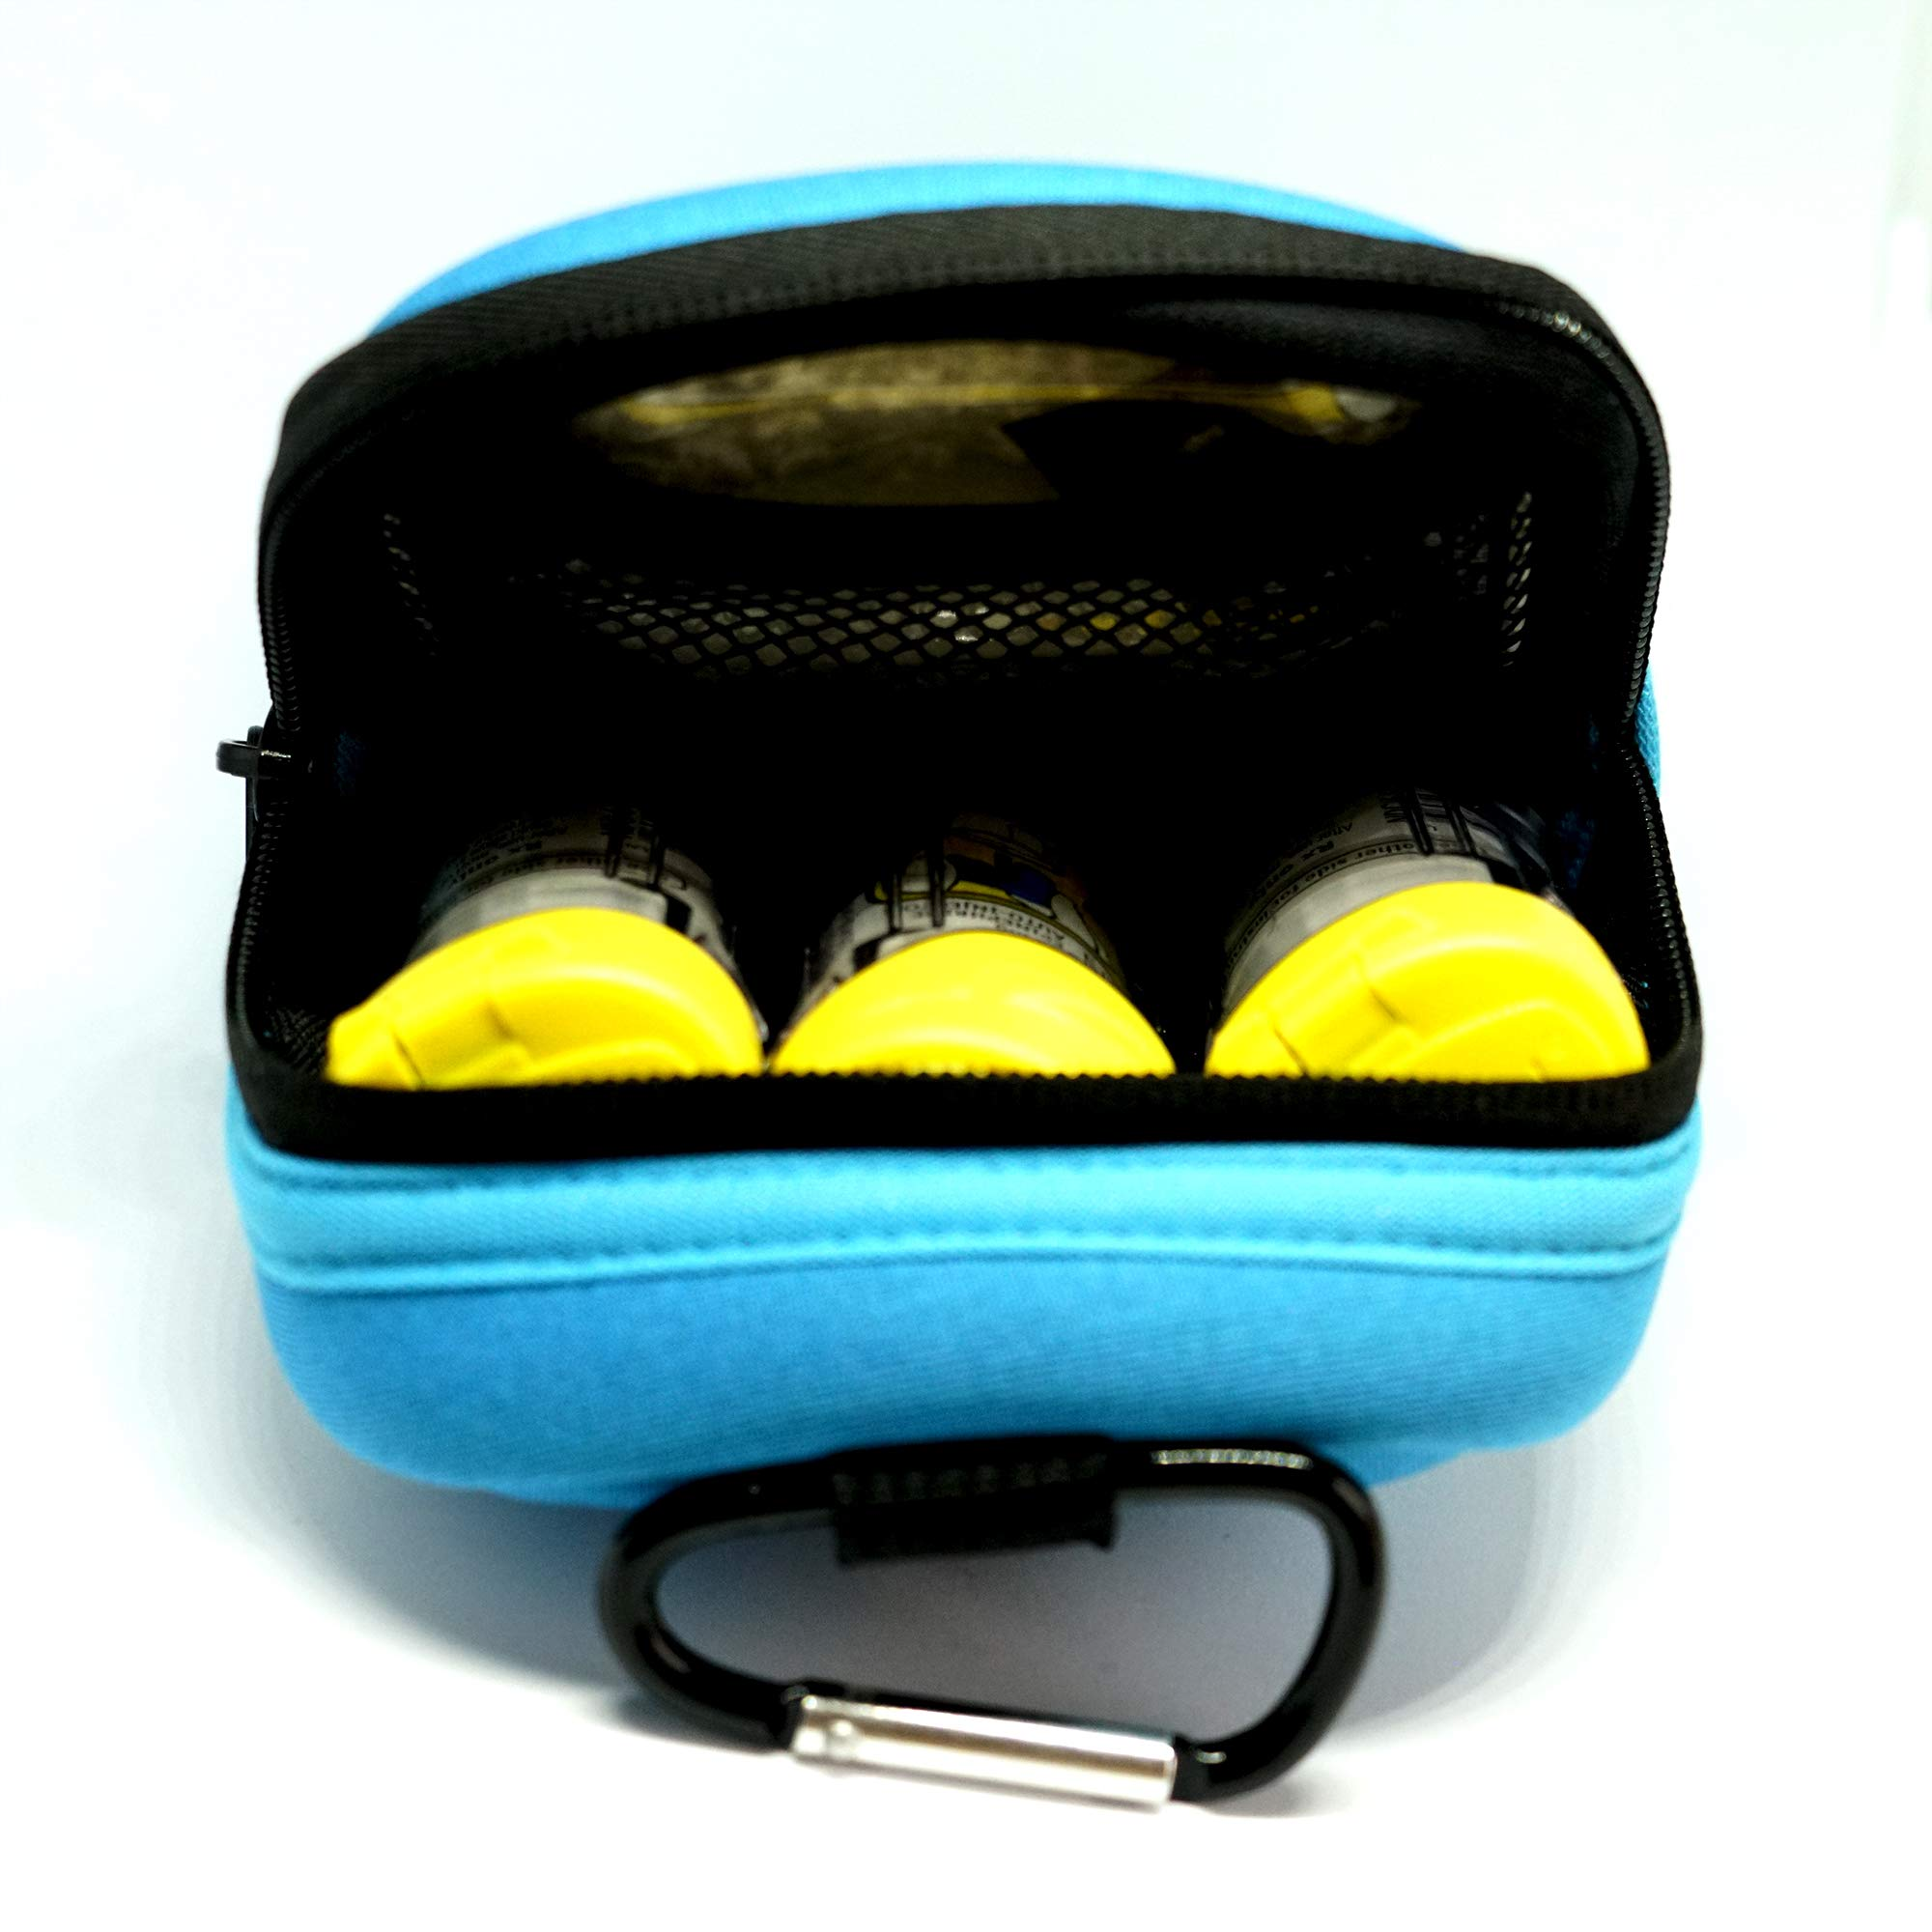 EPI-TEMP Epipen Insulated Case for Kids, Adults - Smart Carrying Pouch, Storage Bag, Powered by PureTemp Phase Change Material to Keep Epinephrine in Safe Temperature Range (Teal) by EPI-TEMP (Image #7)